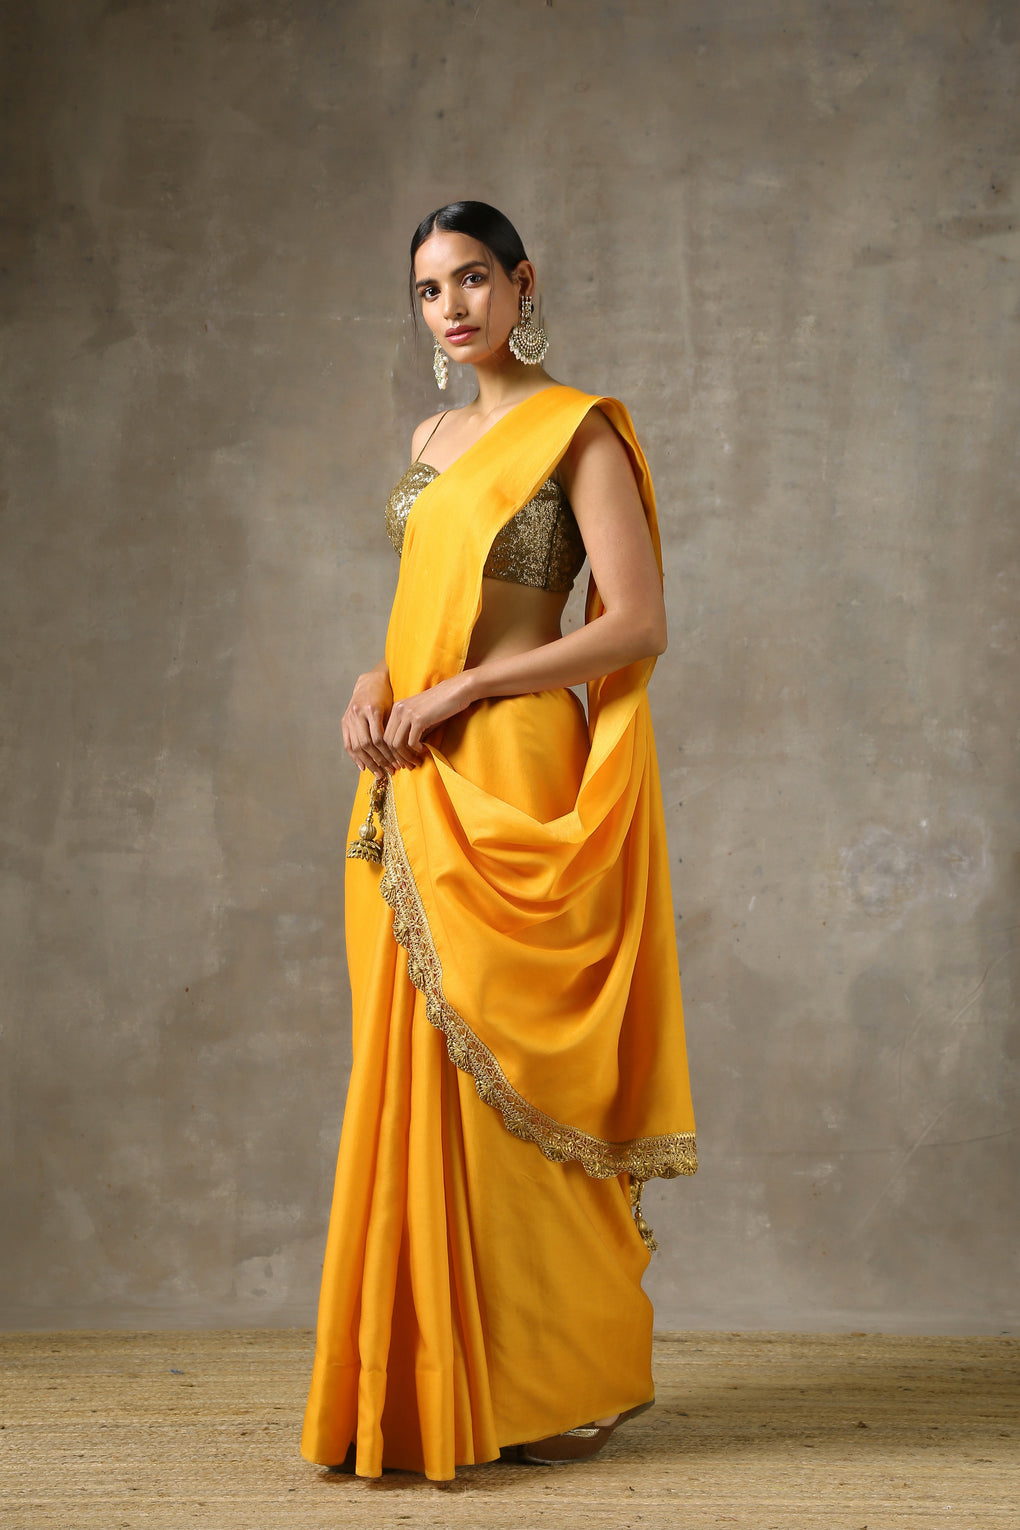 Ochre' Saree with HandMade lace on edge with Pendants